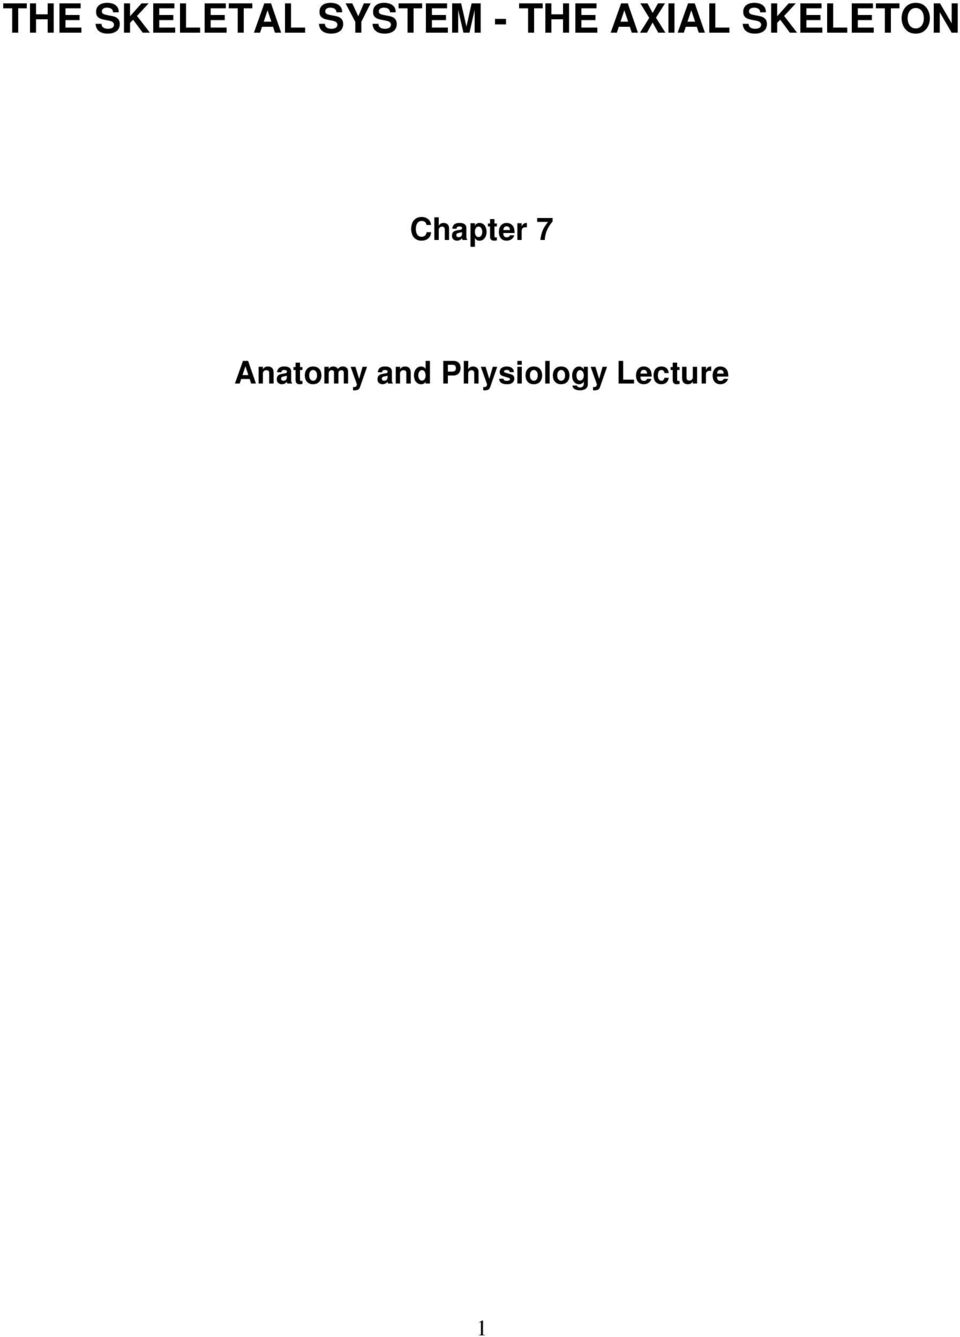 THE SKELETAL SYSTEM - THE AXIAL SKELETON - PDF